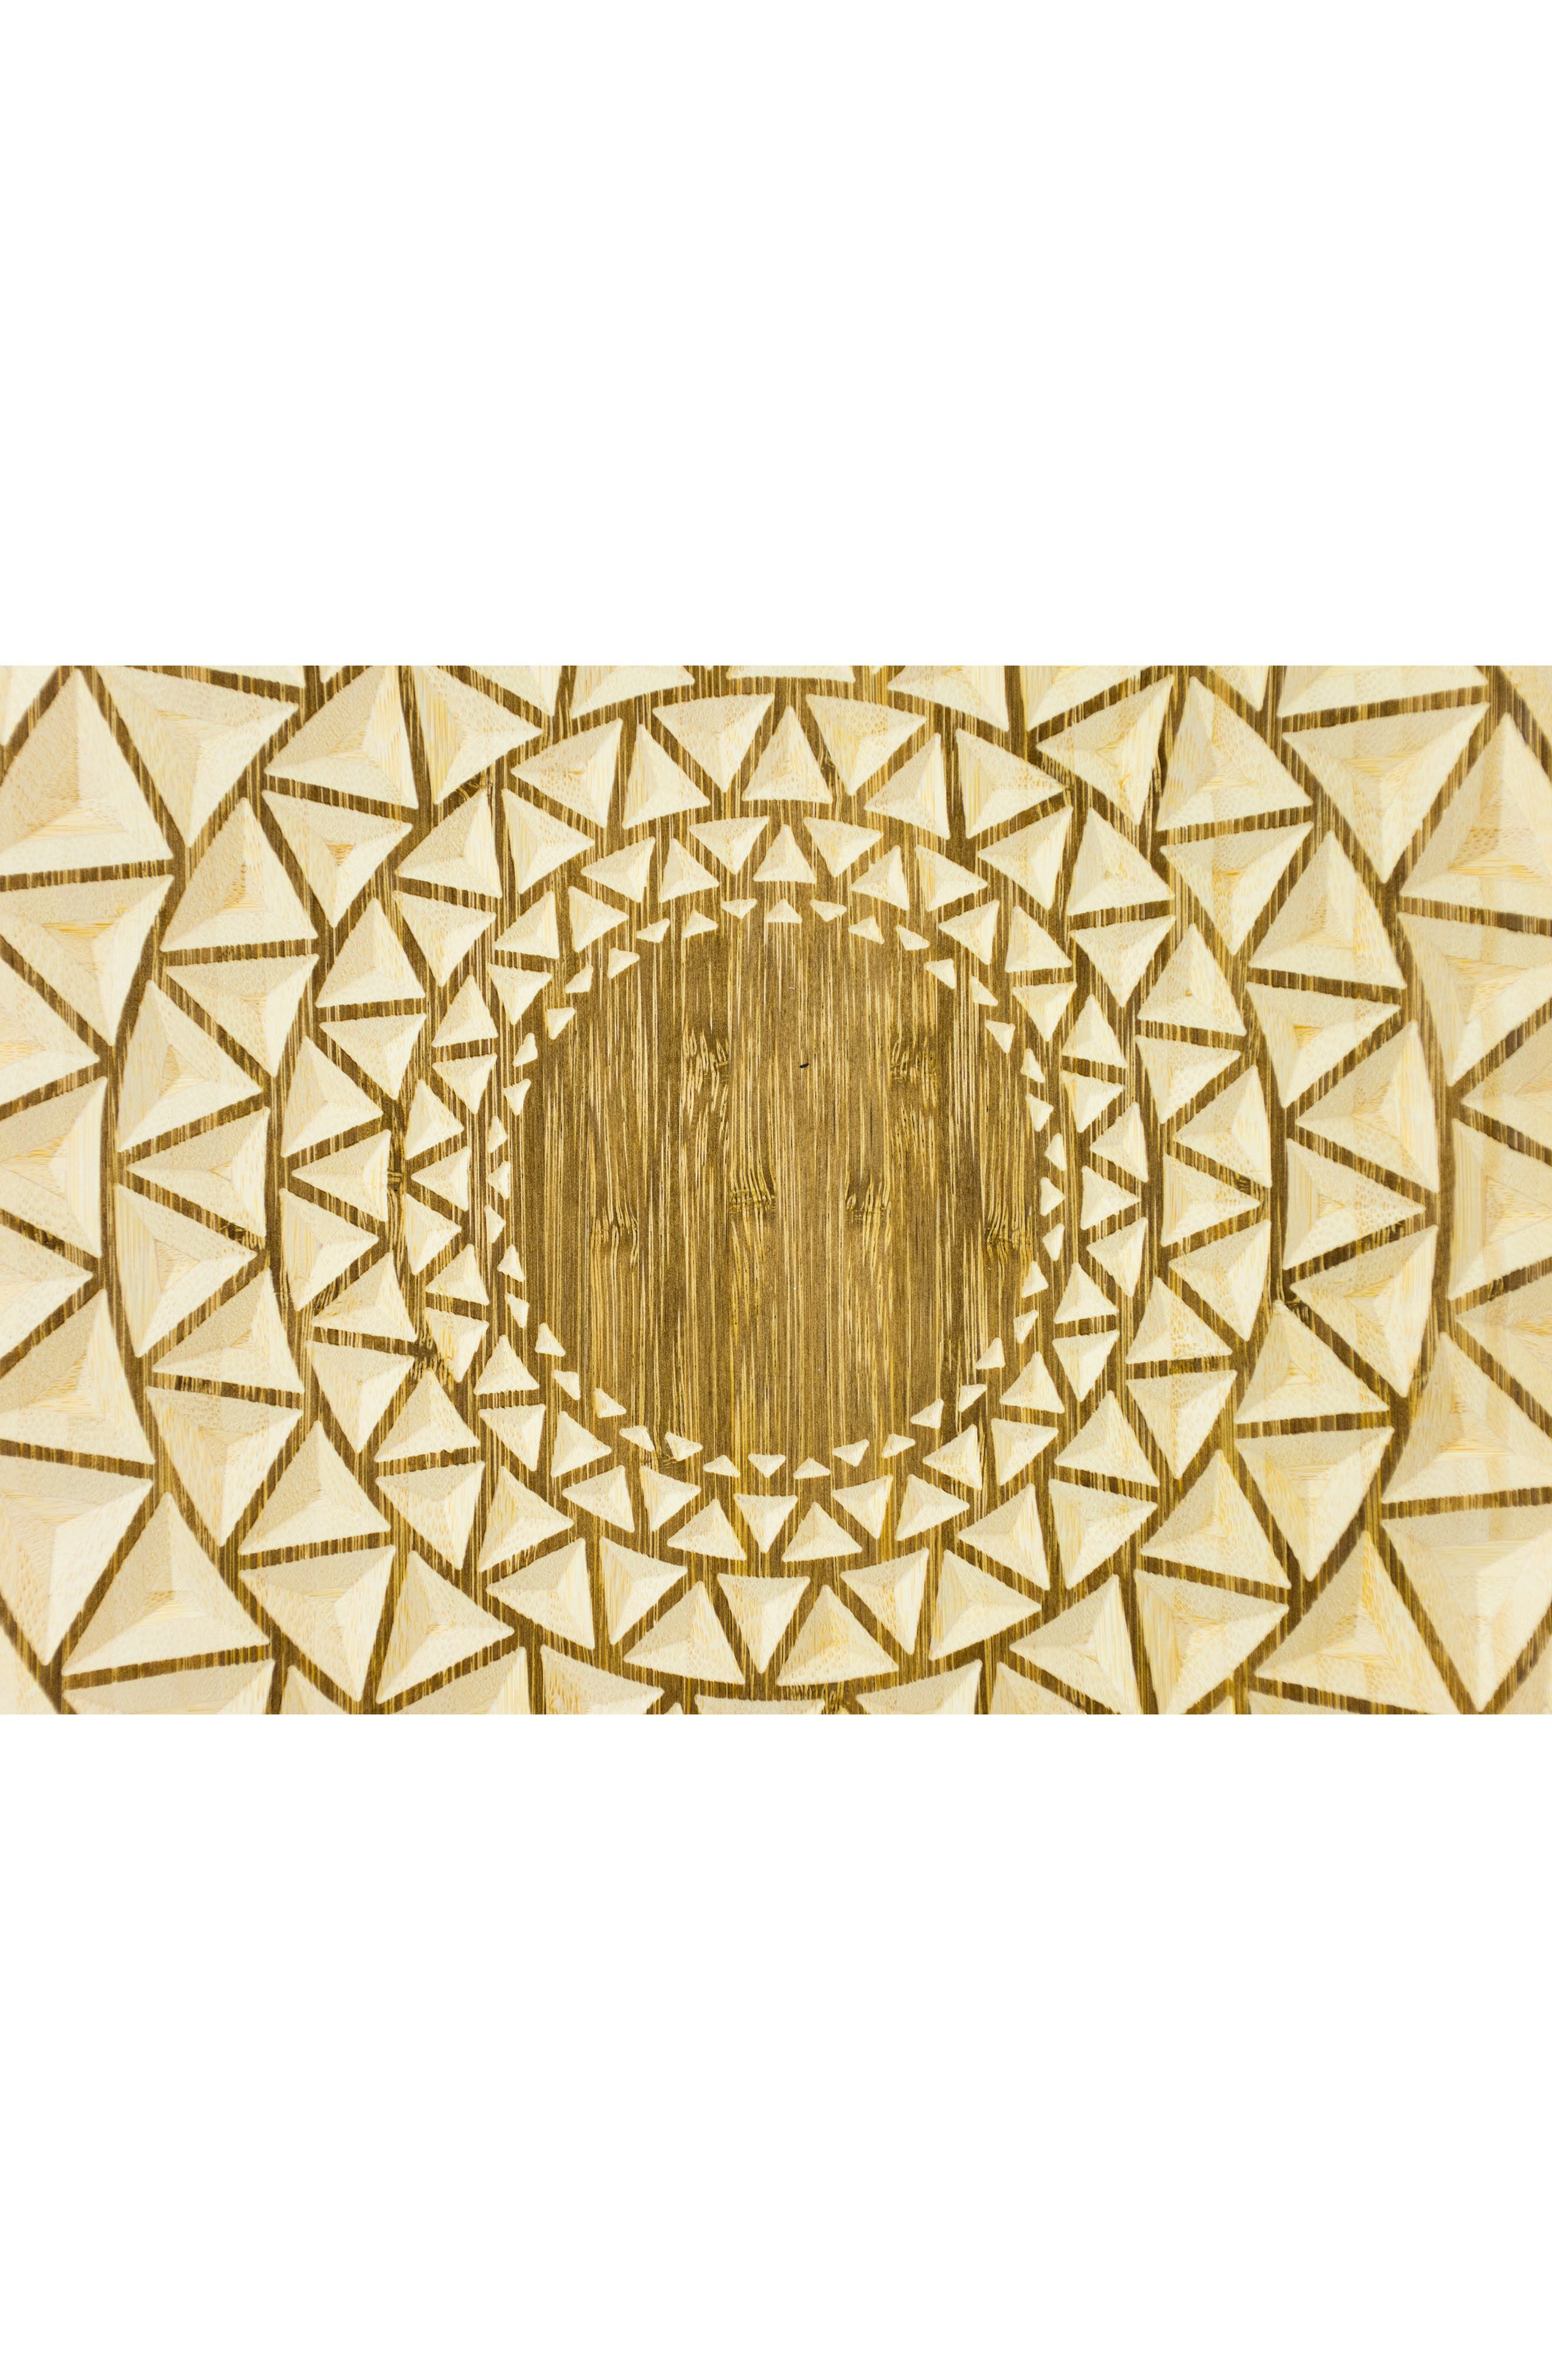 Radial 18 Wooden Wall Art,                             Alternate thumbnail 2, color,                             STAIN